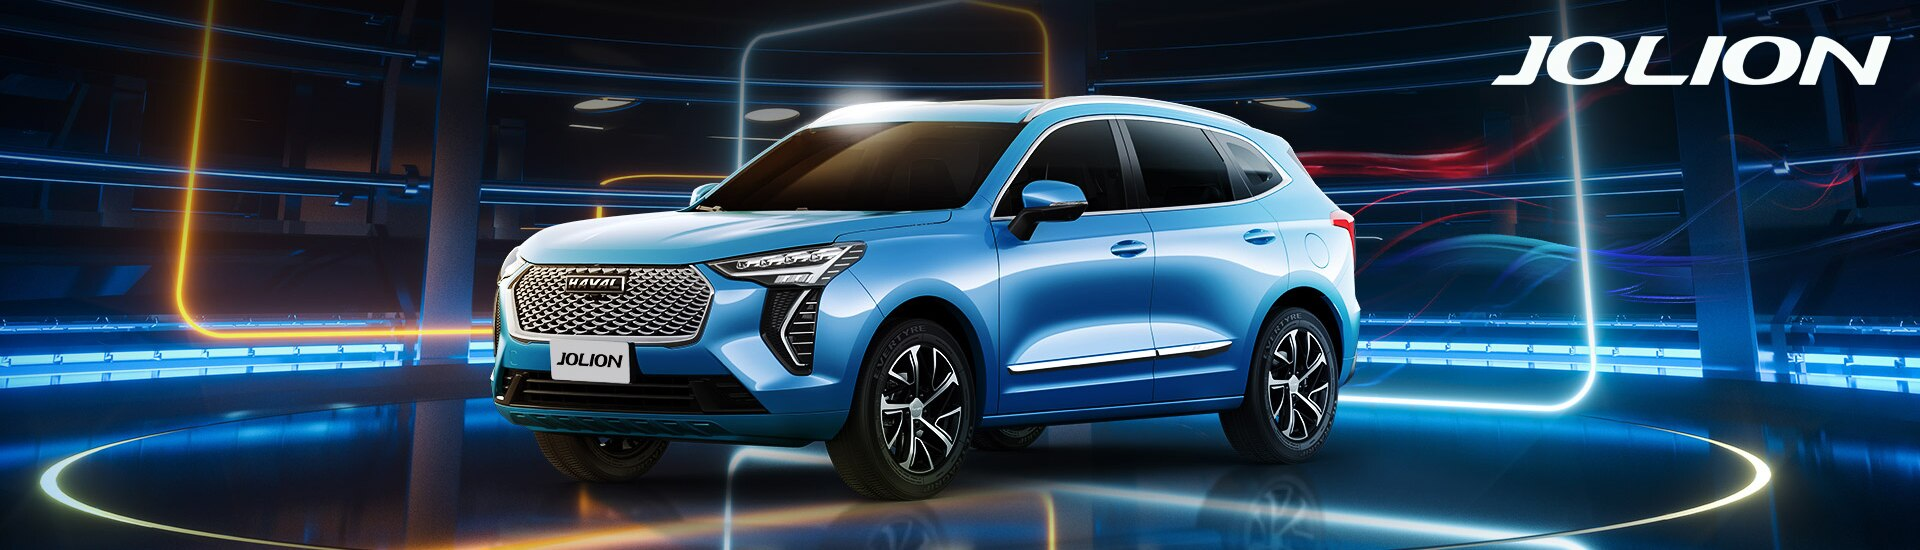 THE ALL-NEW HAVAL JOLION Image